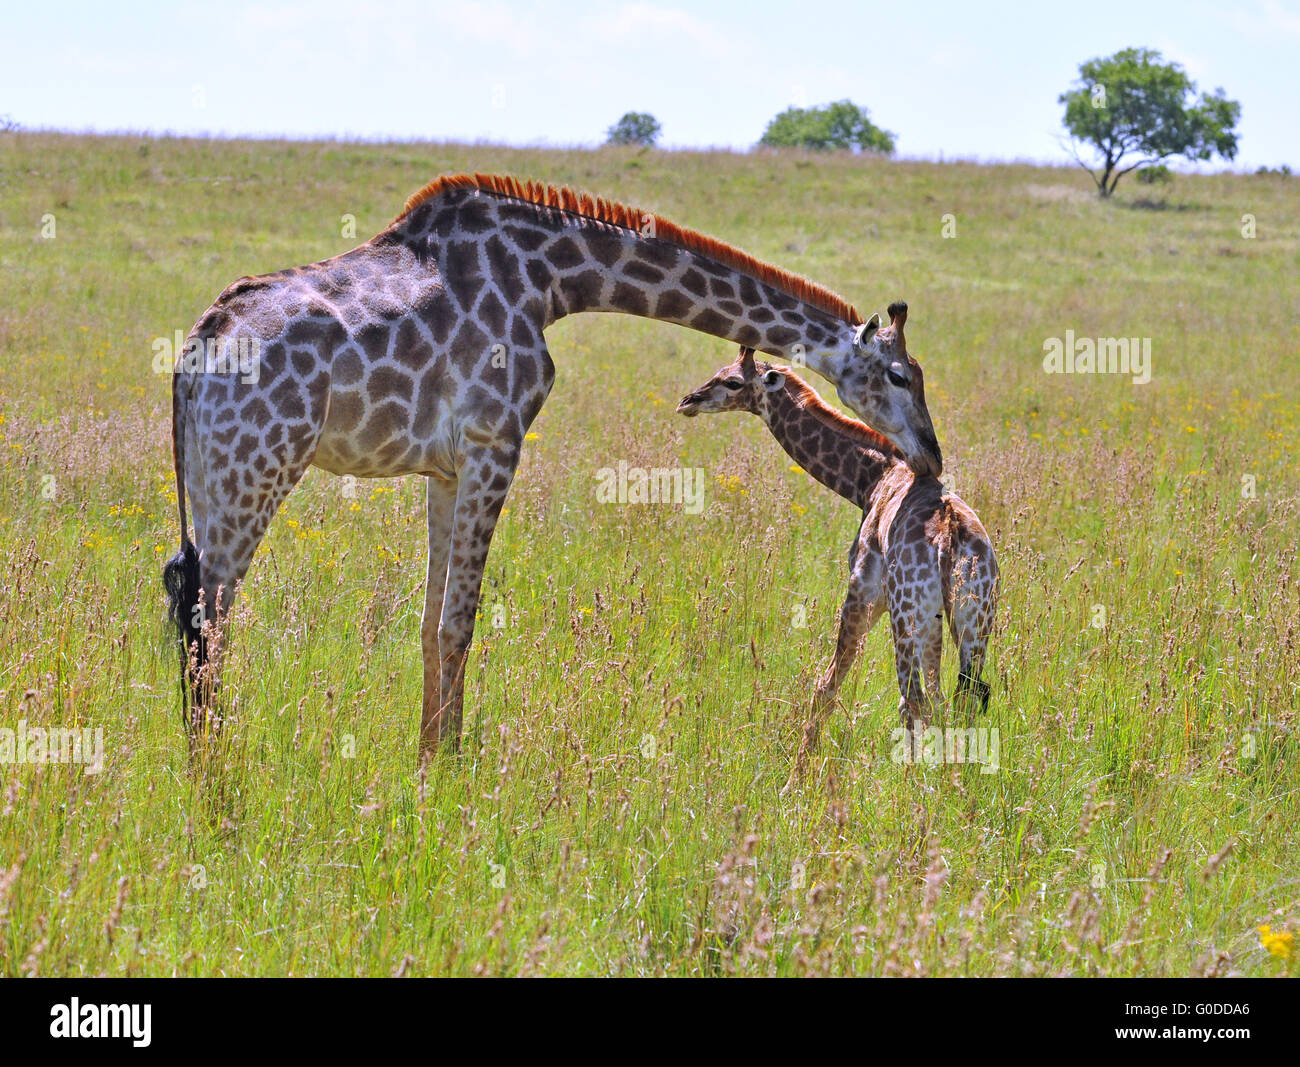 Female Giraffe in Africa with a calf. - Stock Image